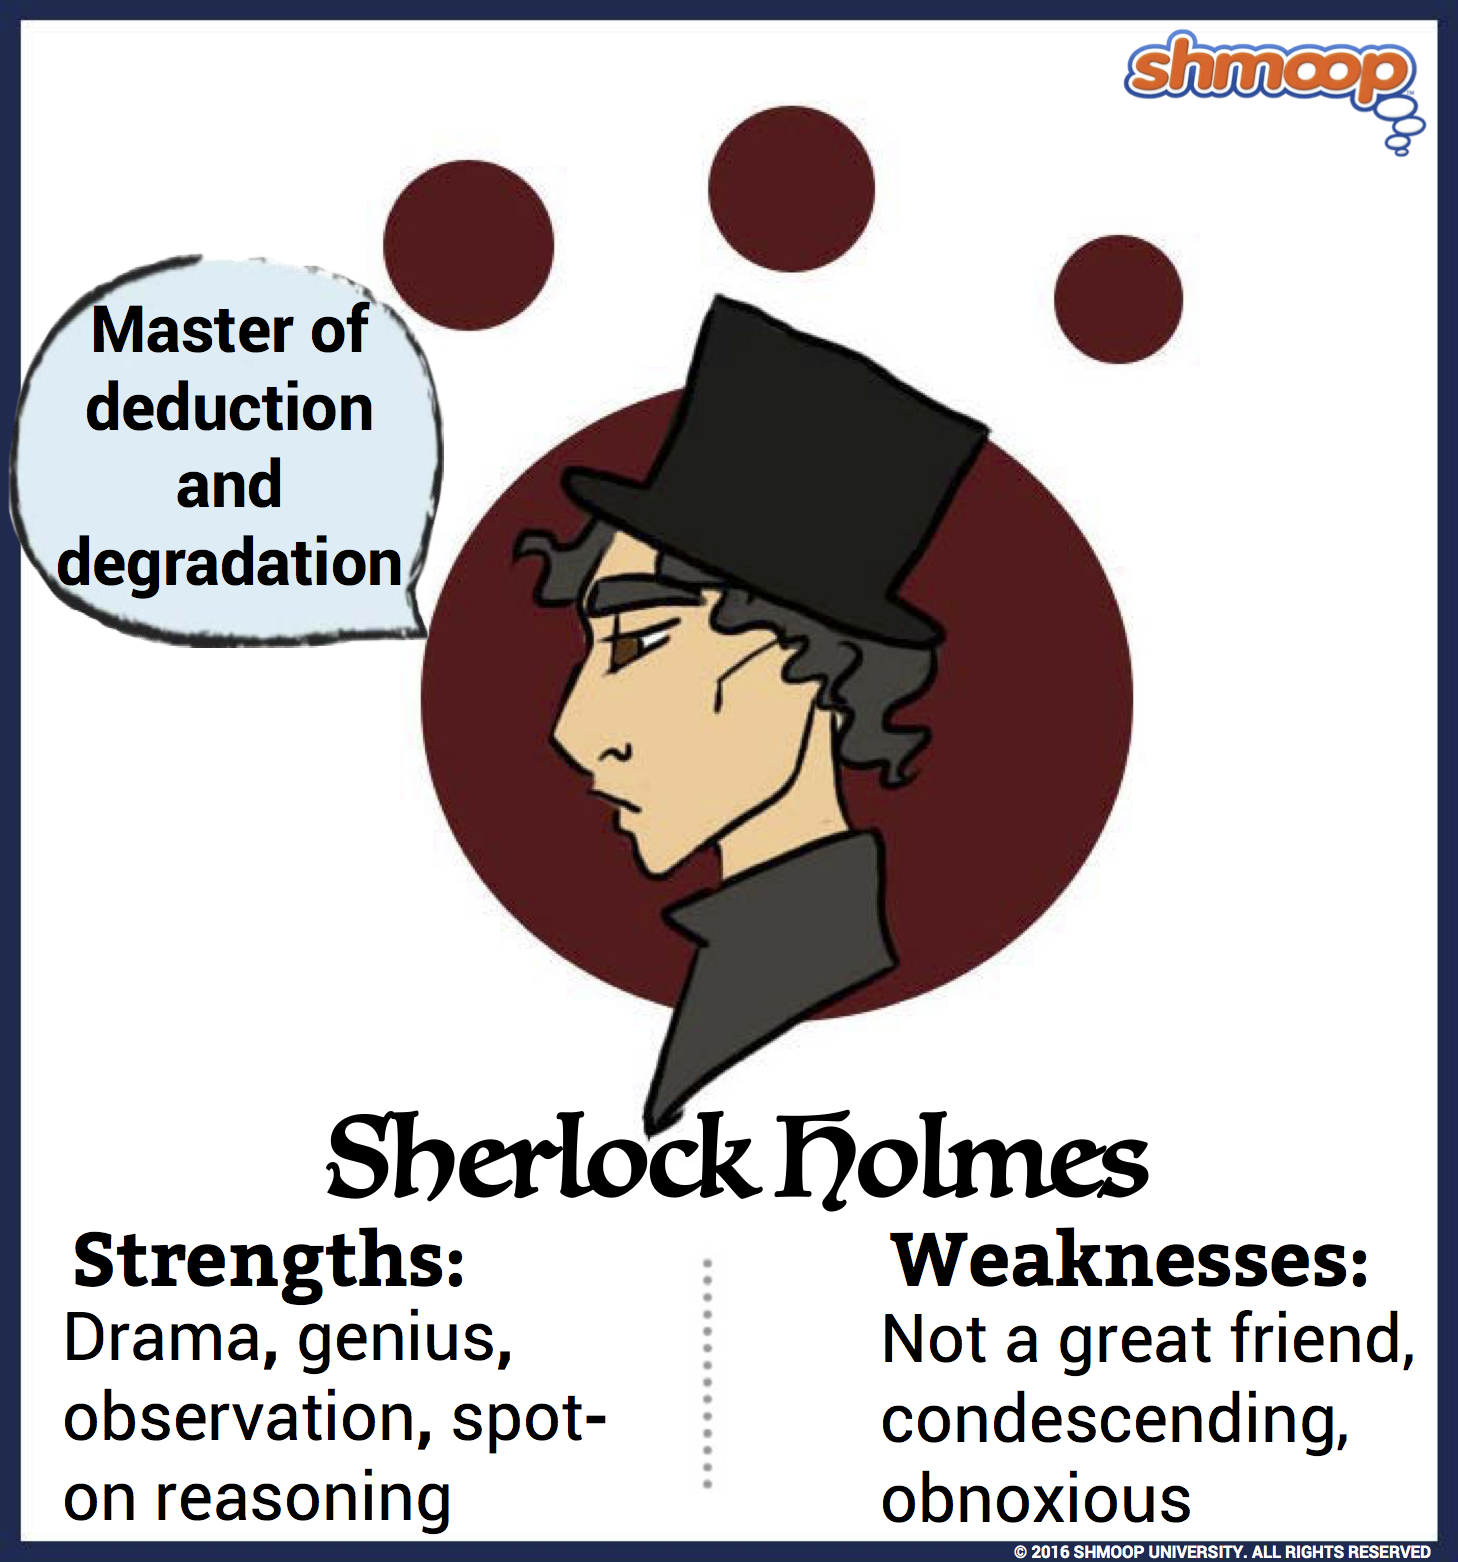 sherlock holmes in the hound of the baskervilles character analysis